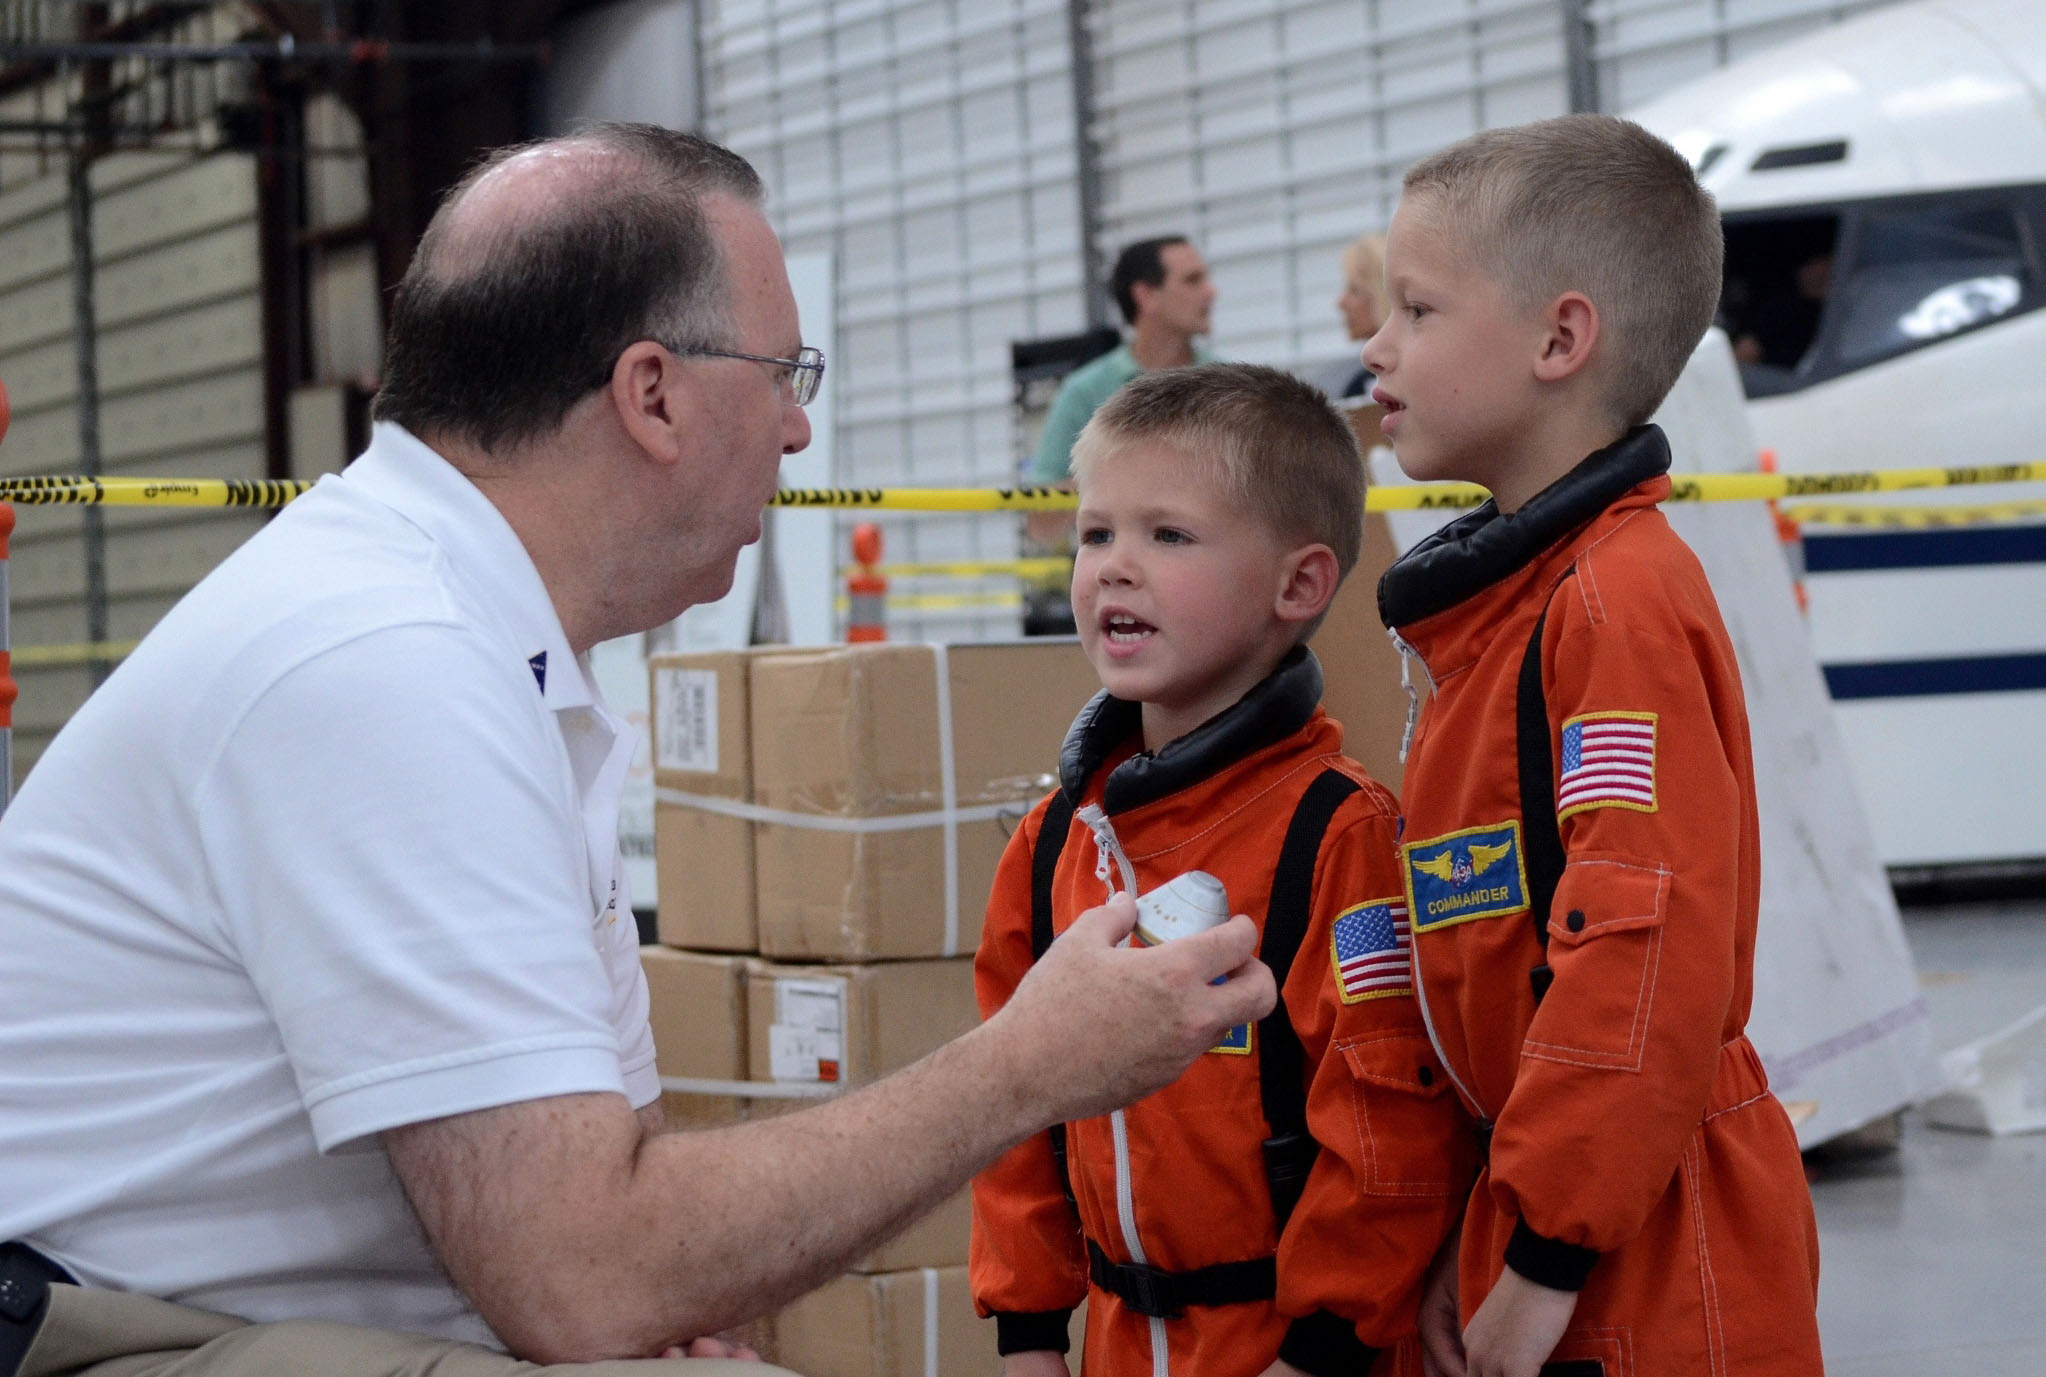 Brothers and future astornauts Galeb (4 years old) and Aiden (7 years old) Mann discuss Orion's journey with a Lockheed Martin team member. Photo by John Bezosky Jr.